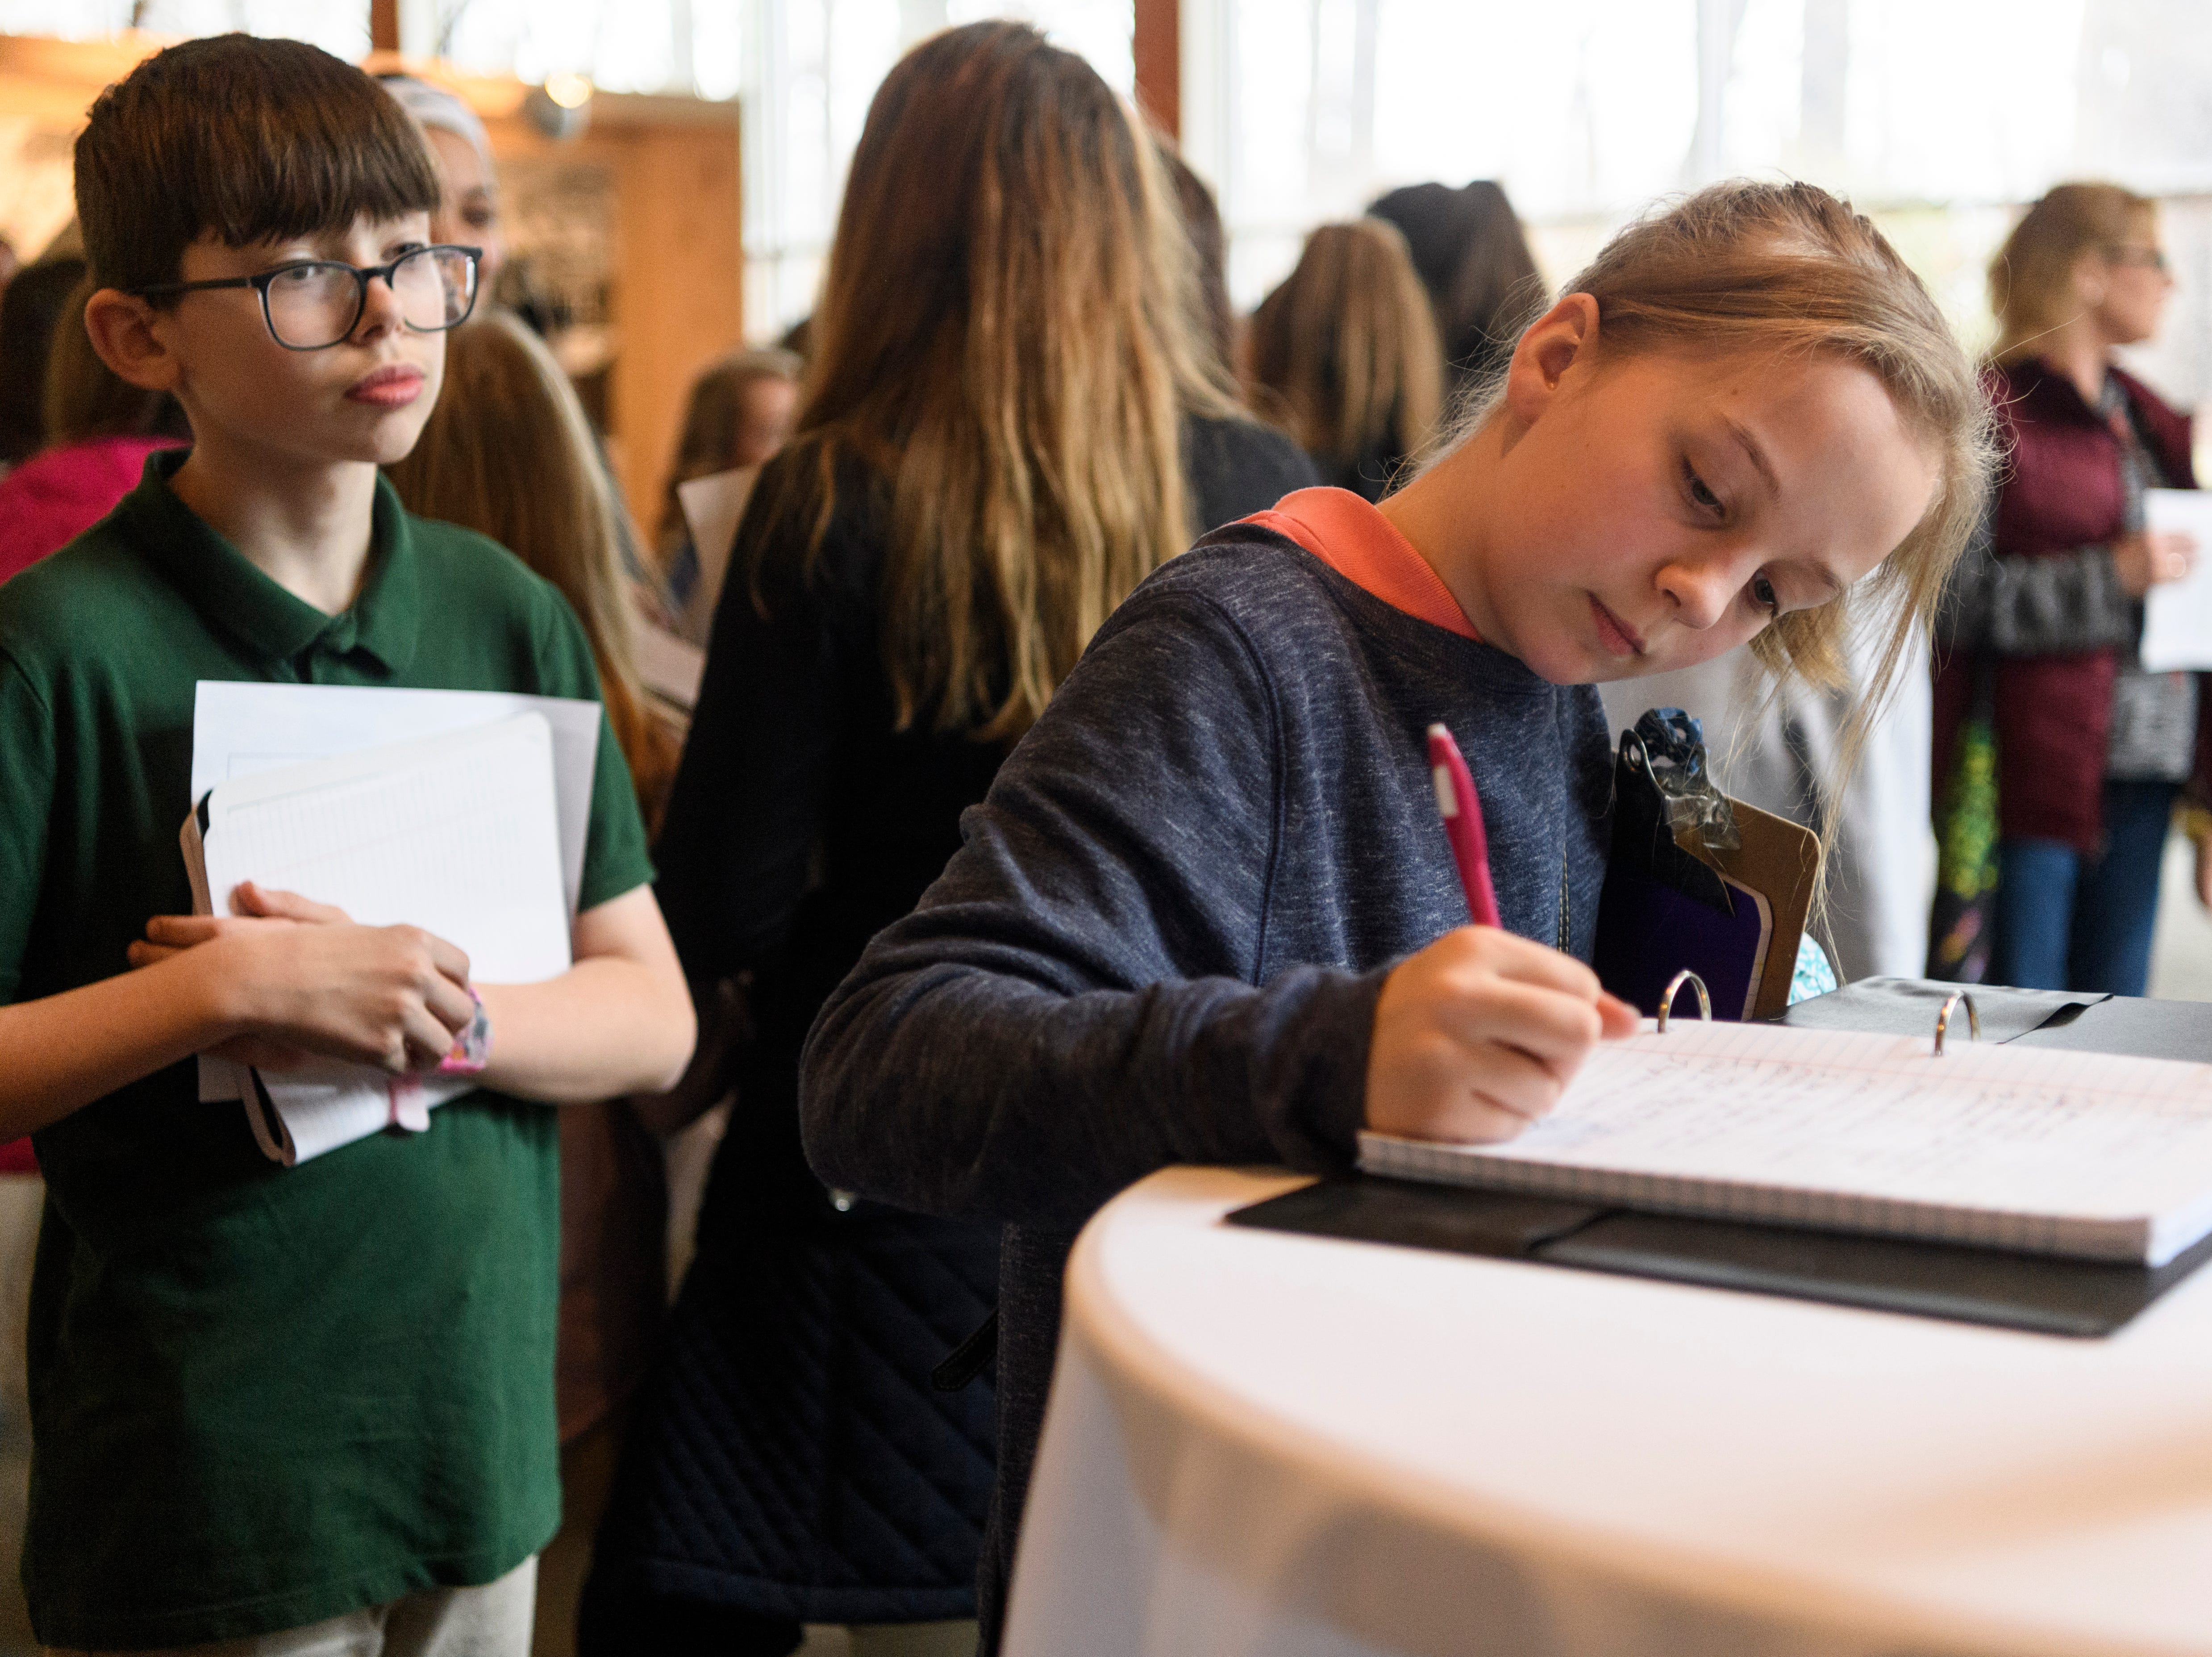 """Hannah Brown, right, Thompkins Middle School sixth-grader, writes a comment about her thoughts on """"A New Generation Remembers"""" Holocaust exhibit as classmate Griffin Dunville, left, waits for his turn at Temple Adath B'nai Israel in Evansville, Ind., Wednesday, Feb. 6, 2019."""